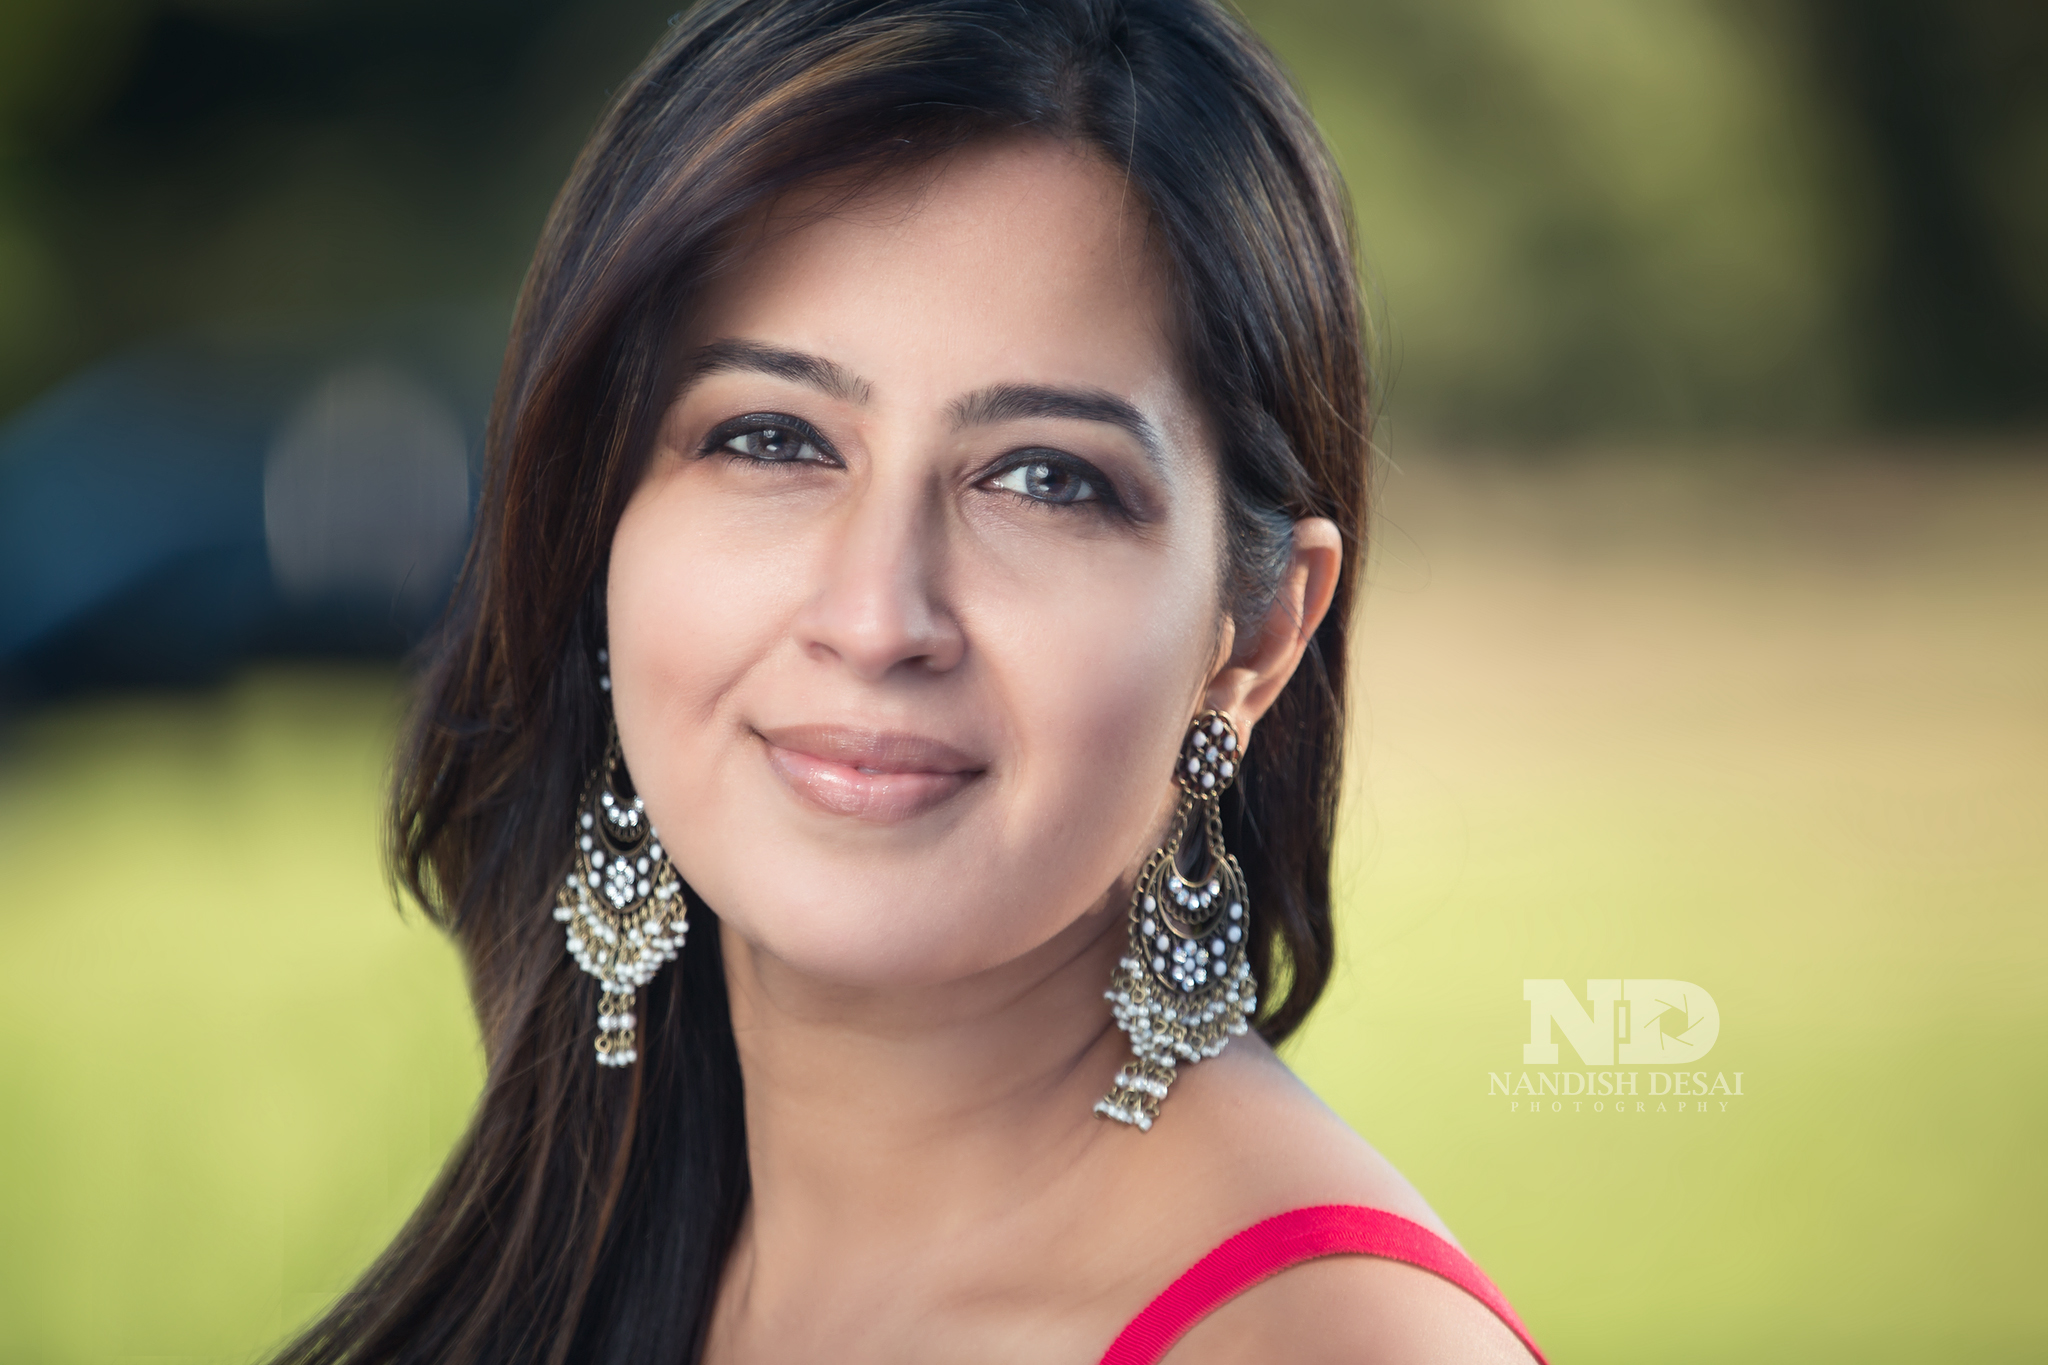 The session started with a headshot of this beautiful model Shamima.